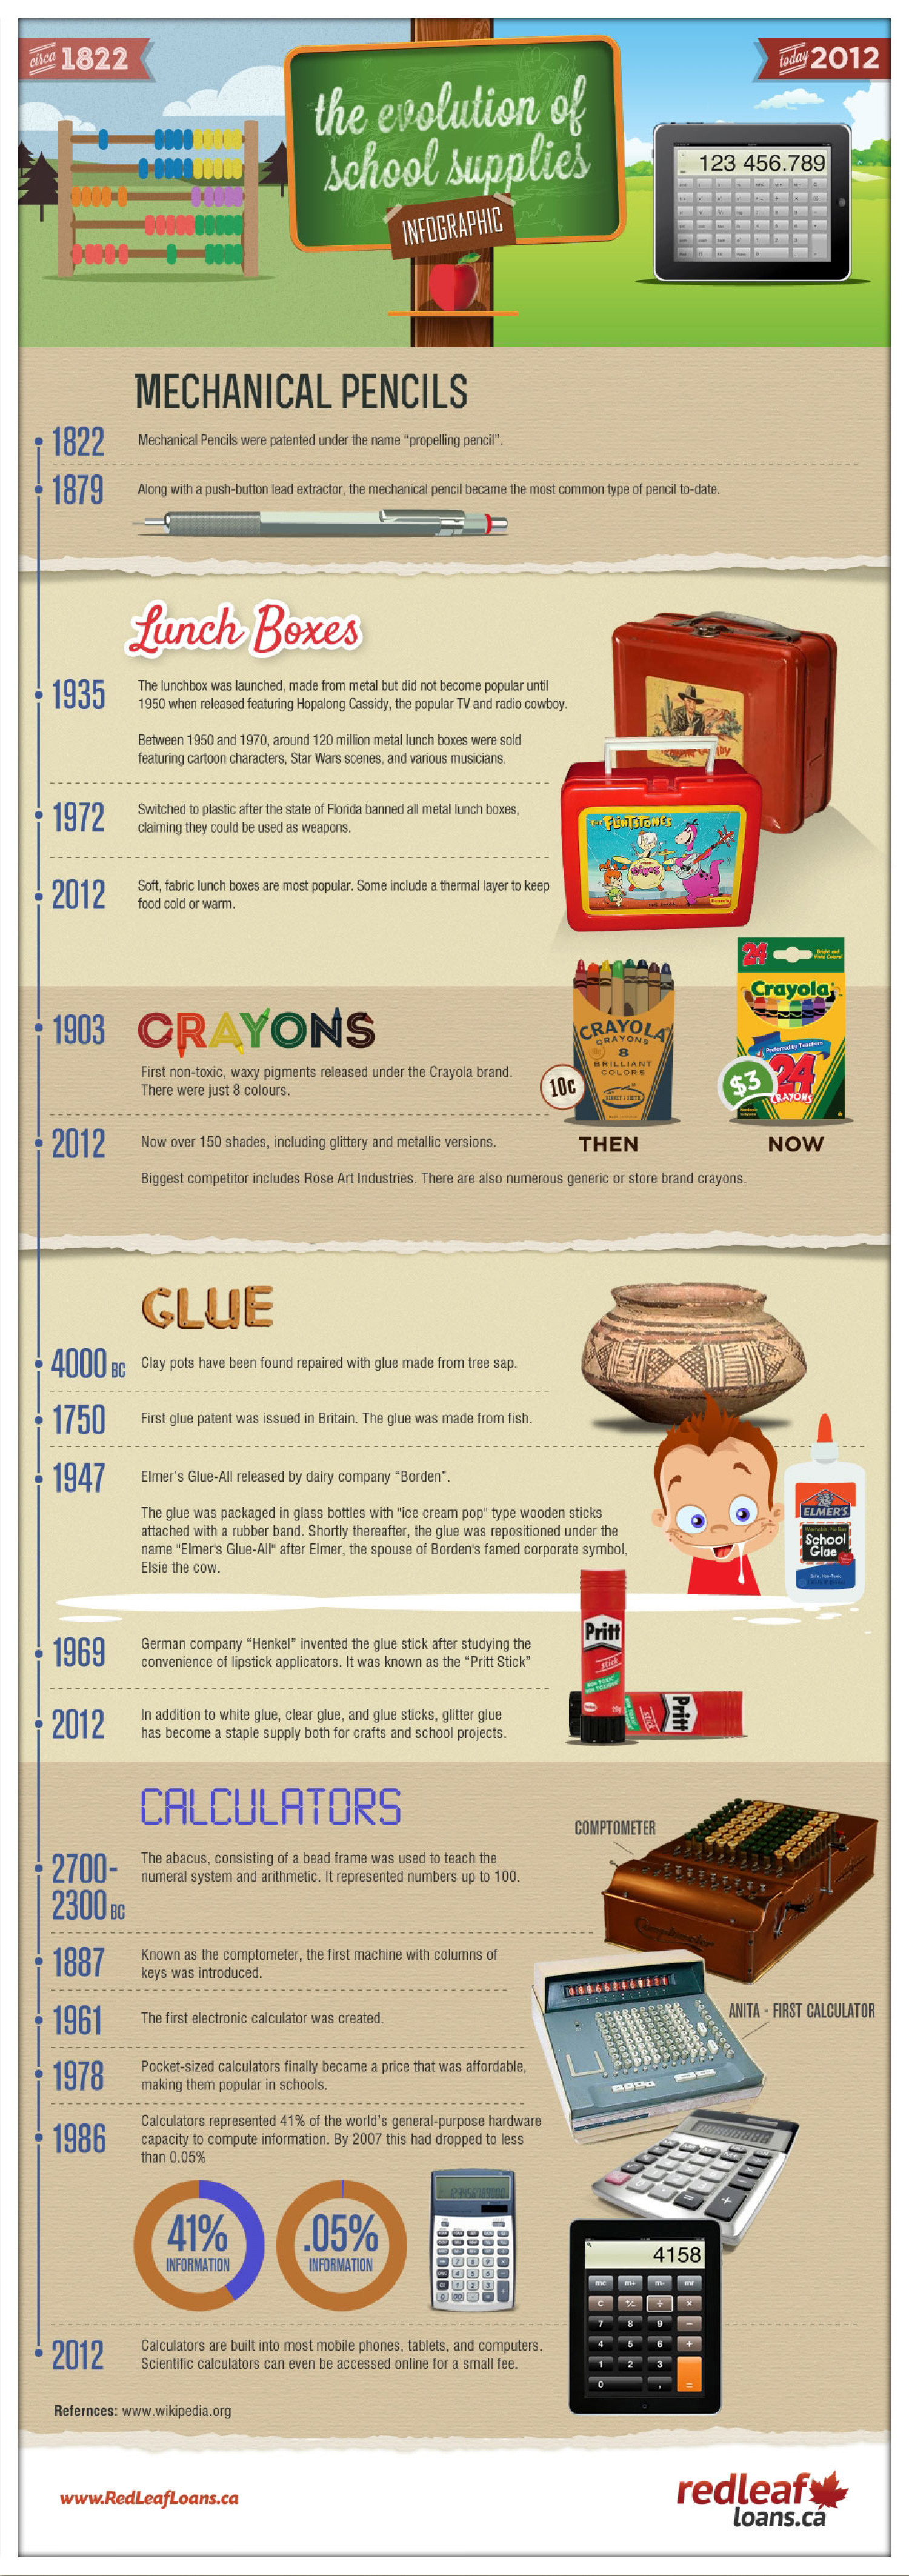 The Evolution of School Supplies Infographic